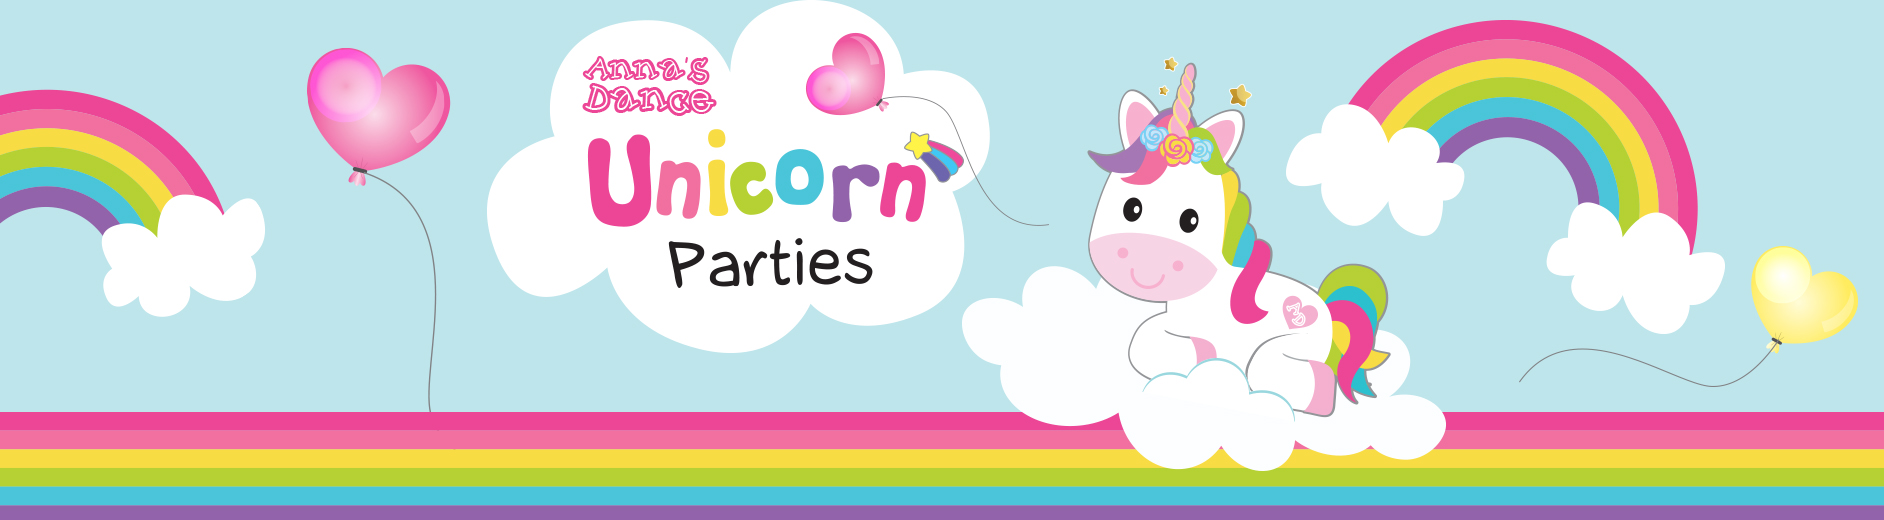 Unicorn Parties